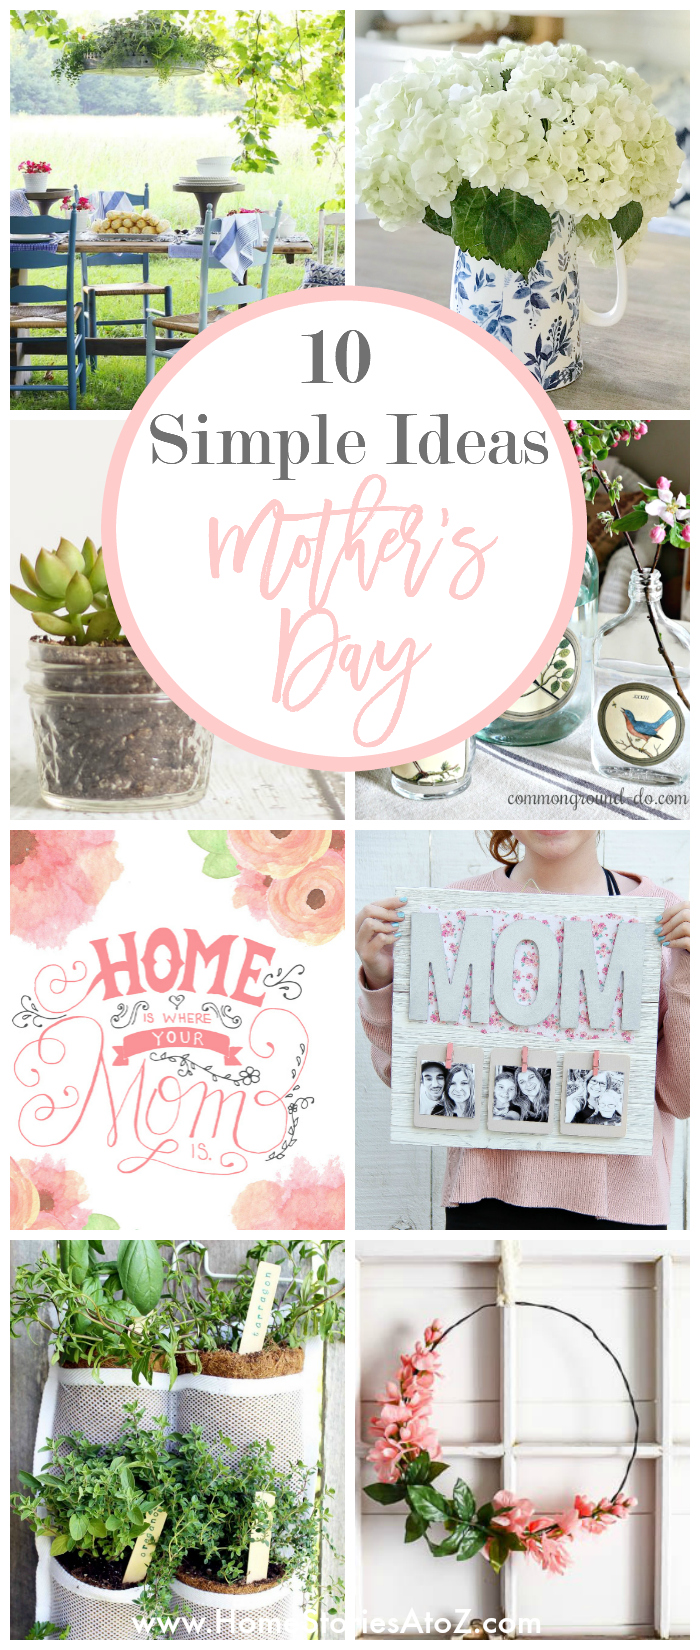 10-Simple-Ideas-for-Mothers-Day-Home-Stories-A-to-Z